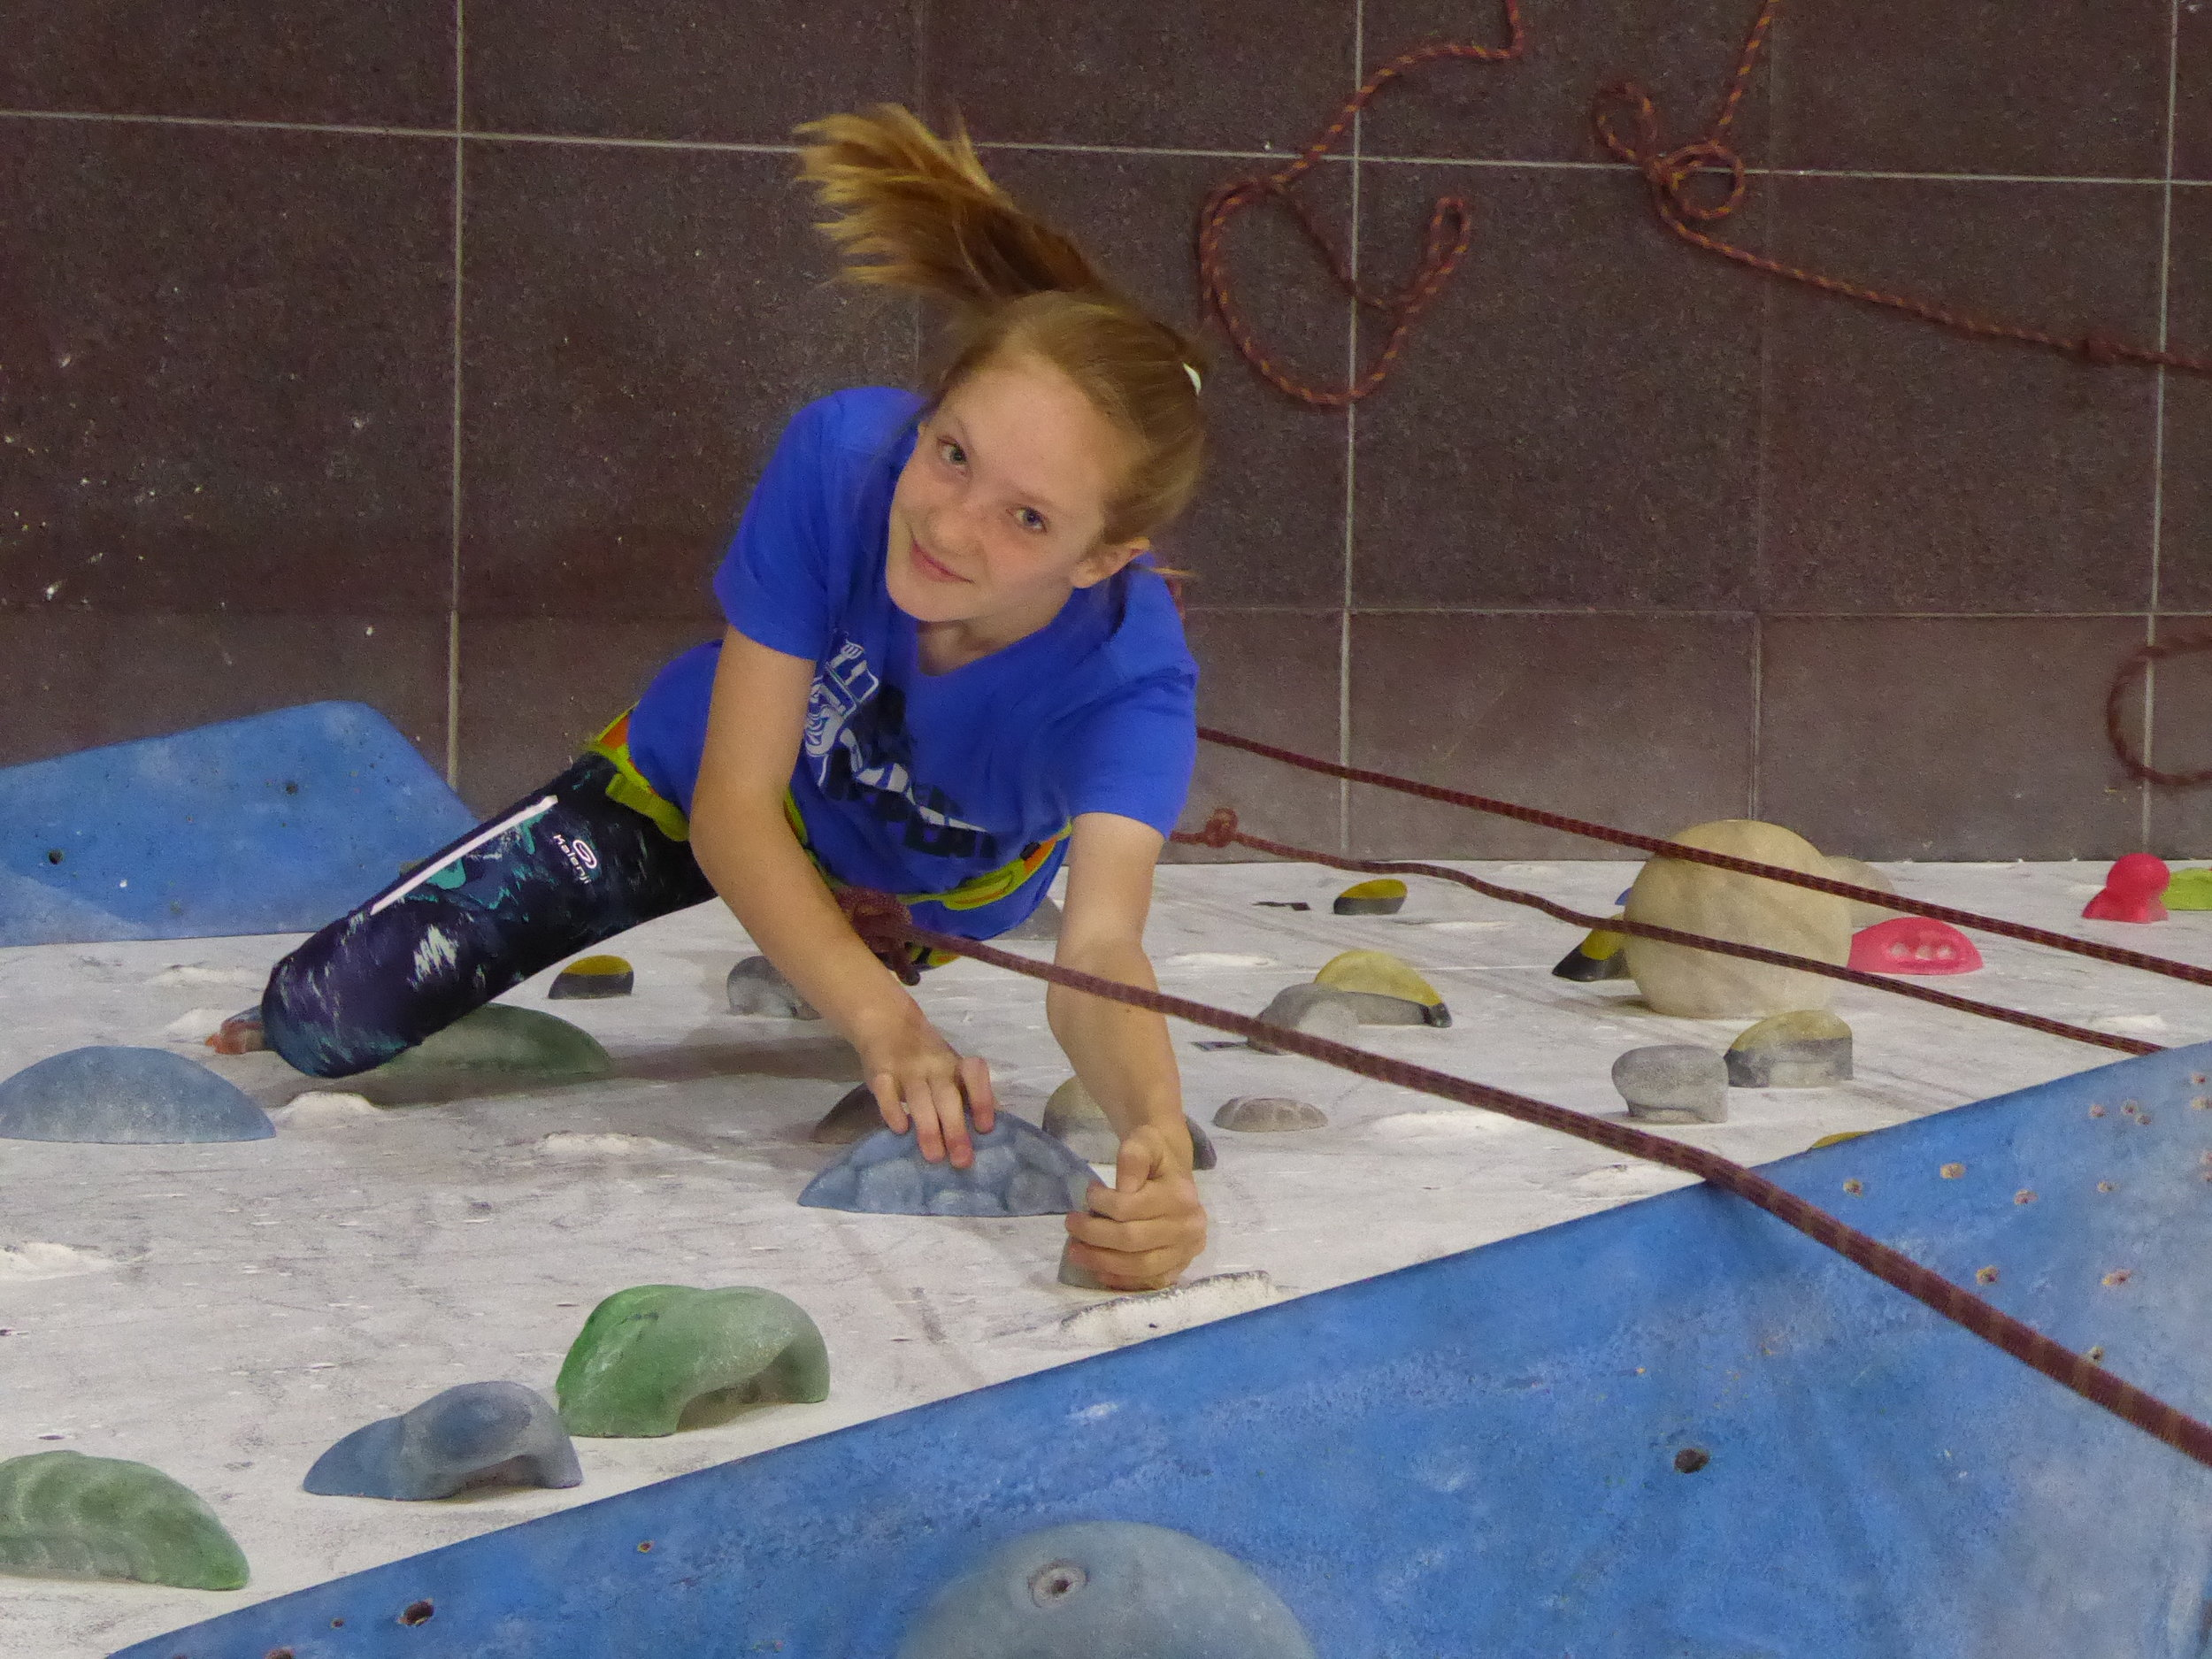 Young Climbers Club - Ages 13-17£12 per Session or £100 for a block of 10Sunday 13:00-15:00Thursday 19:00-21:00